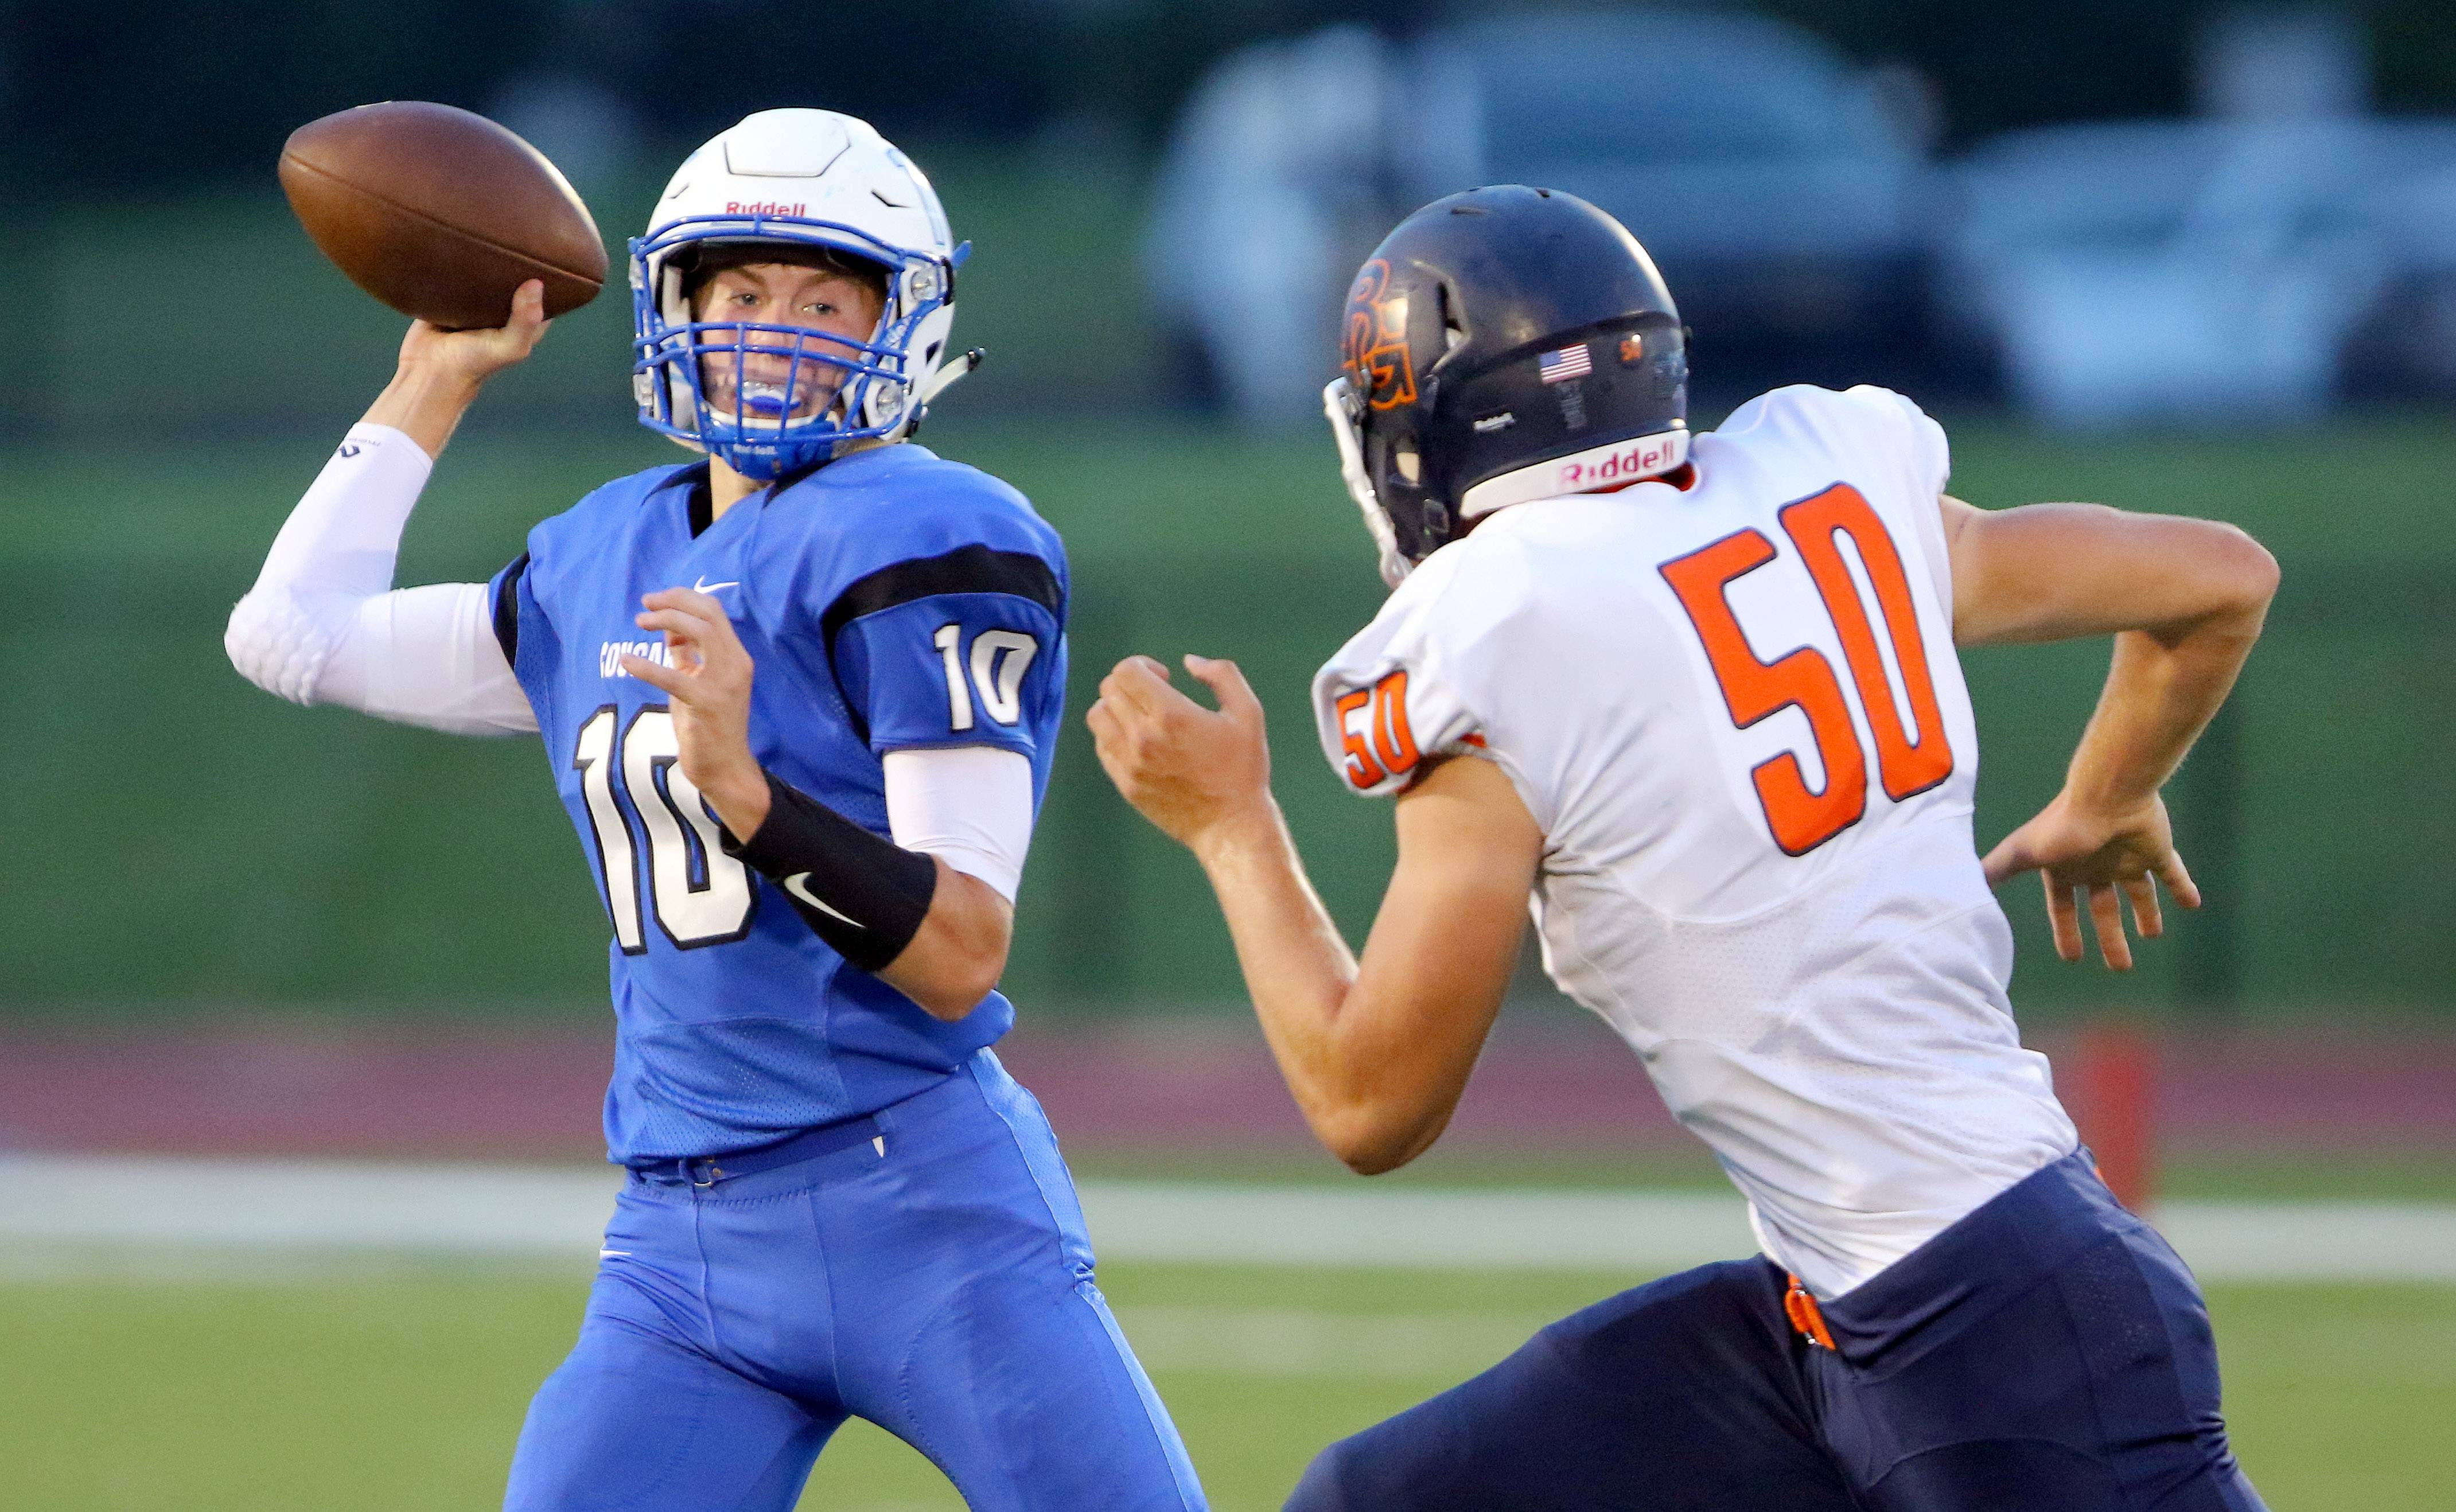 Vernon Hills' Kyle Hull looks to pass as Buffalo Grove's Justin Gold pursues during regular-season play at Vernon Hills. The Cougars travel to Nazareth Academy for a 1 p.m. Saturday second-round playoff matchup.